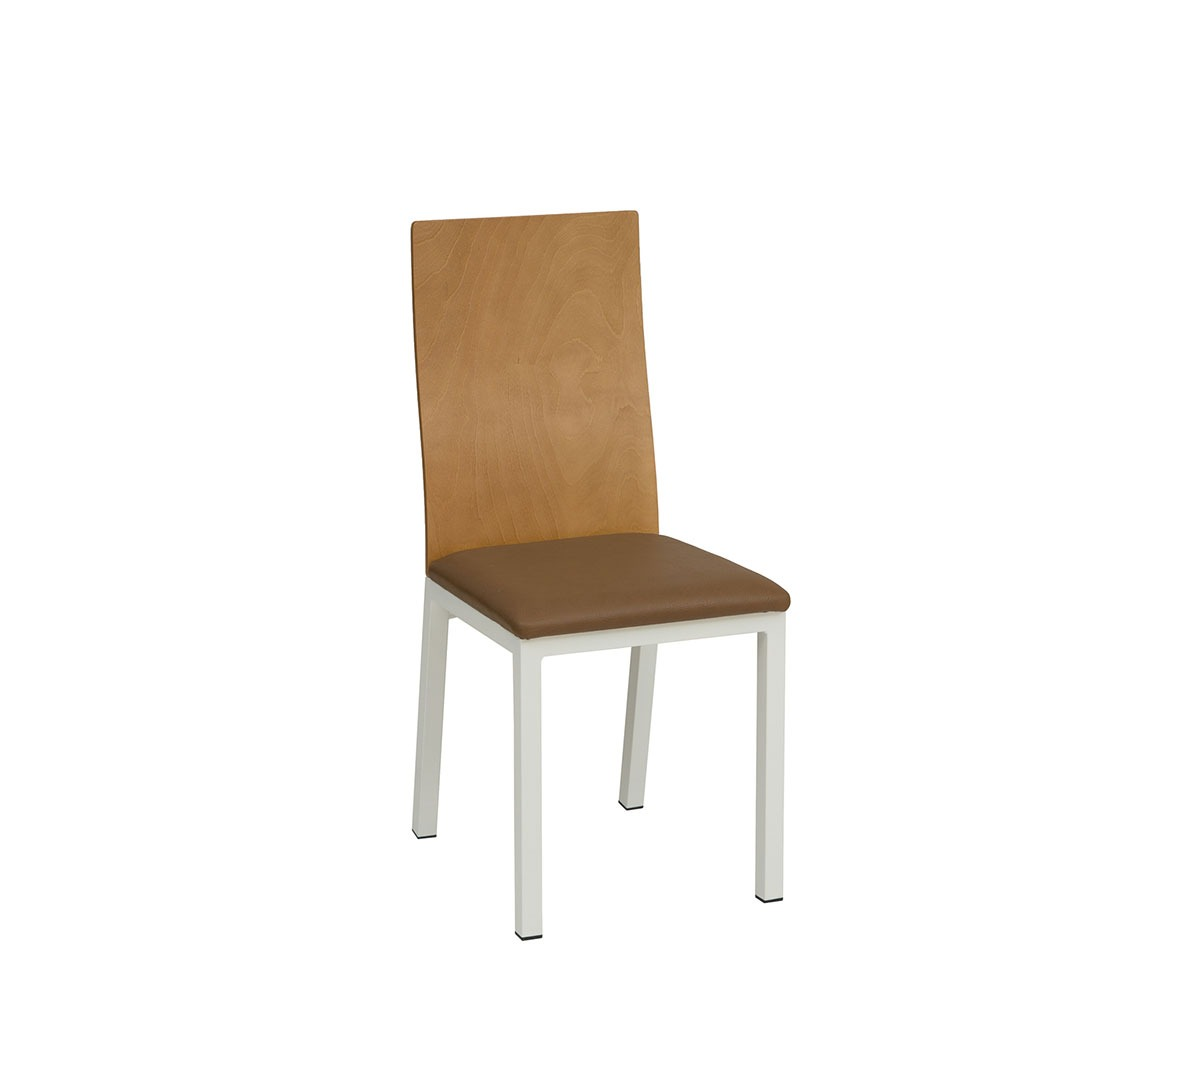 Silla Boston estructura acero color blanco texturado respaldo barnizado natural asiento tapizado textil marrón chocolate